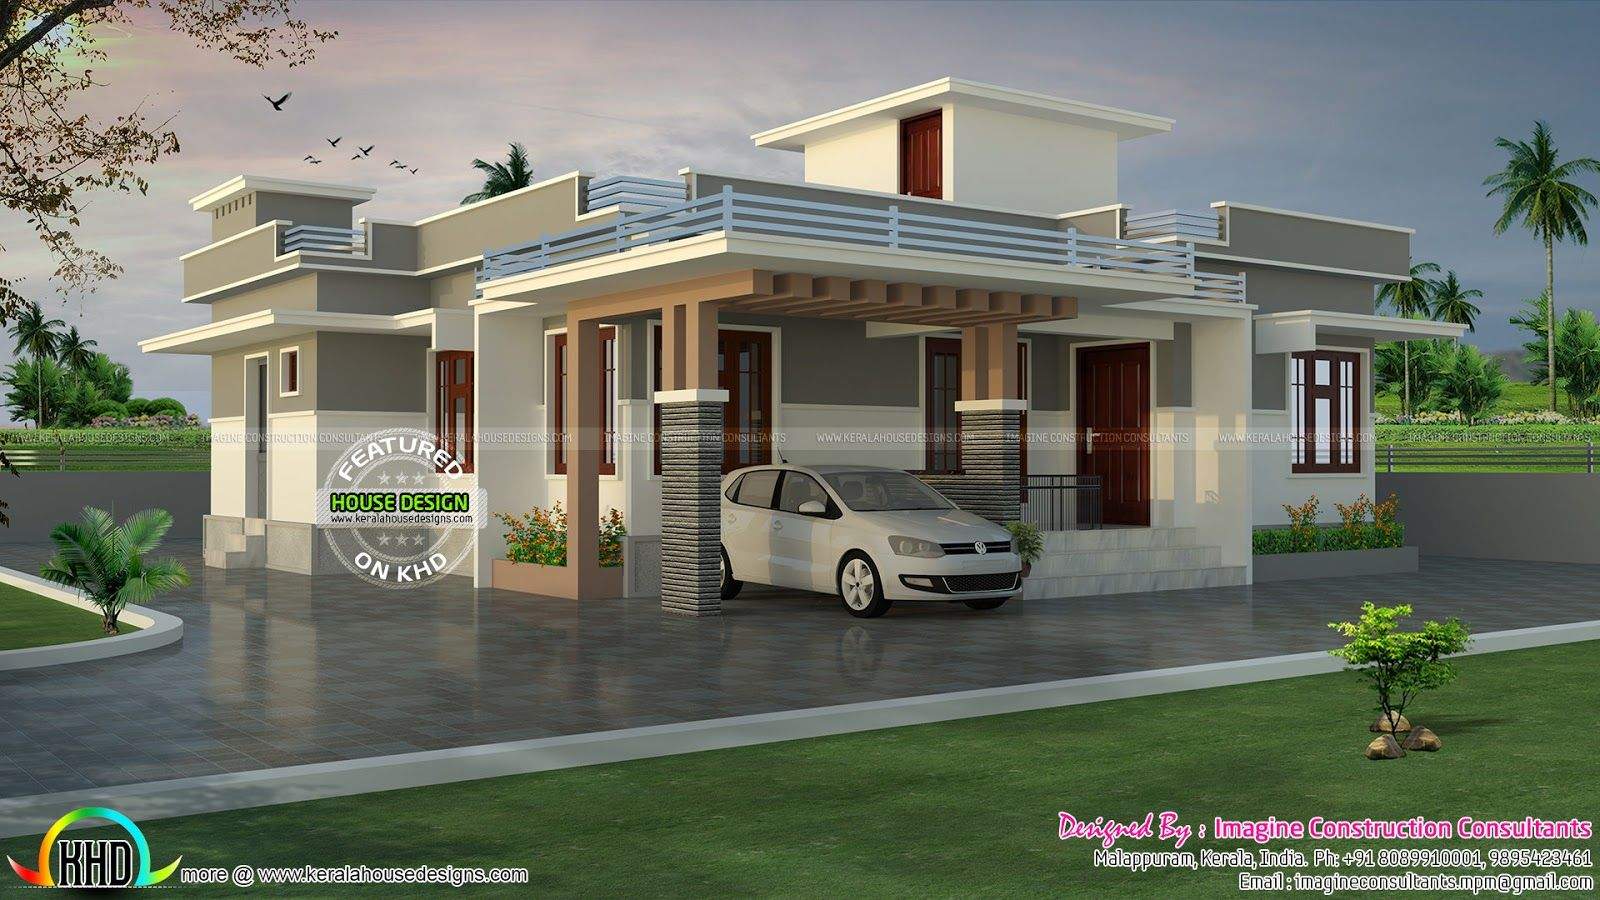 1200 sq-ft Rs 18 lakhs cost estimated house plan in 2019 | beautiful